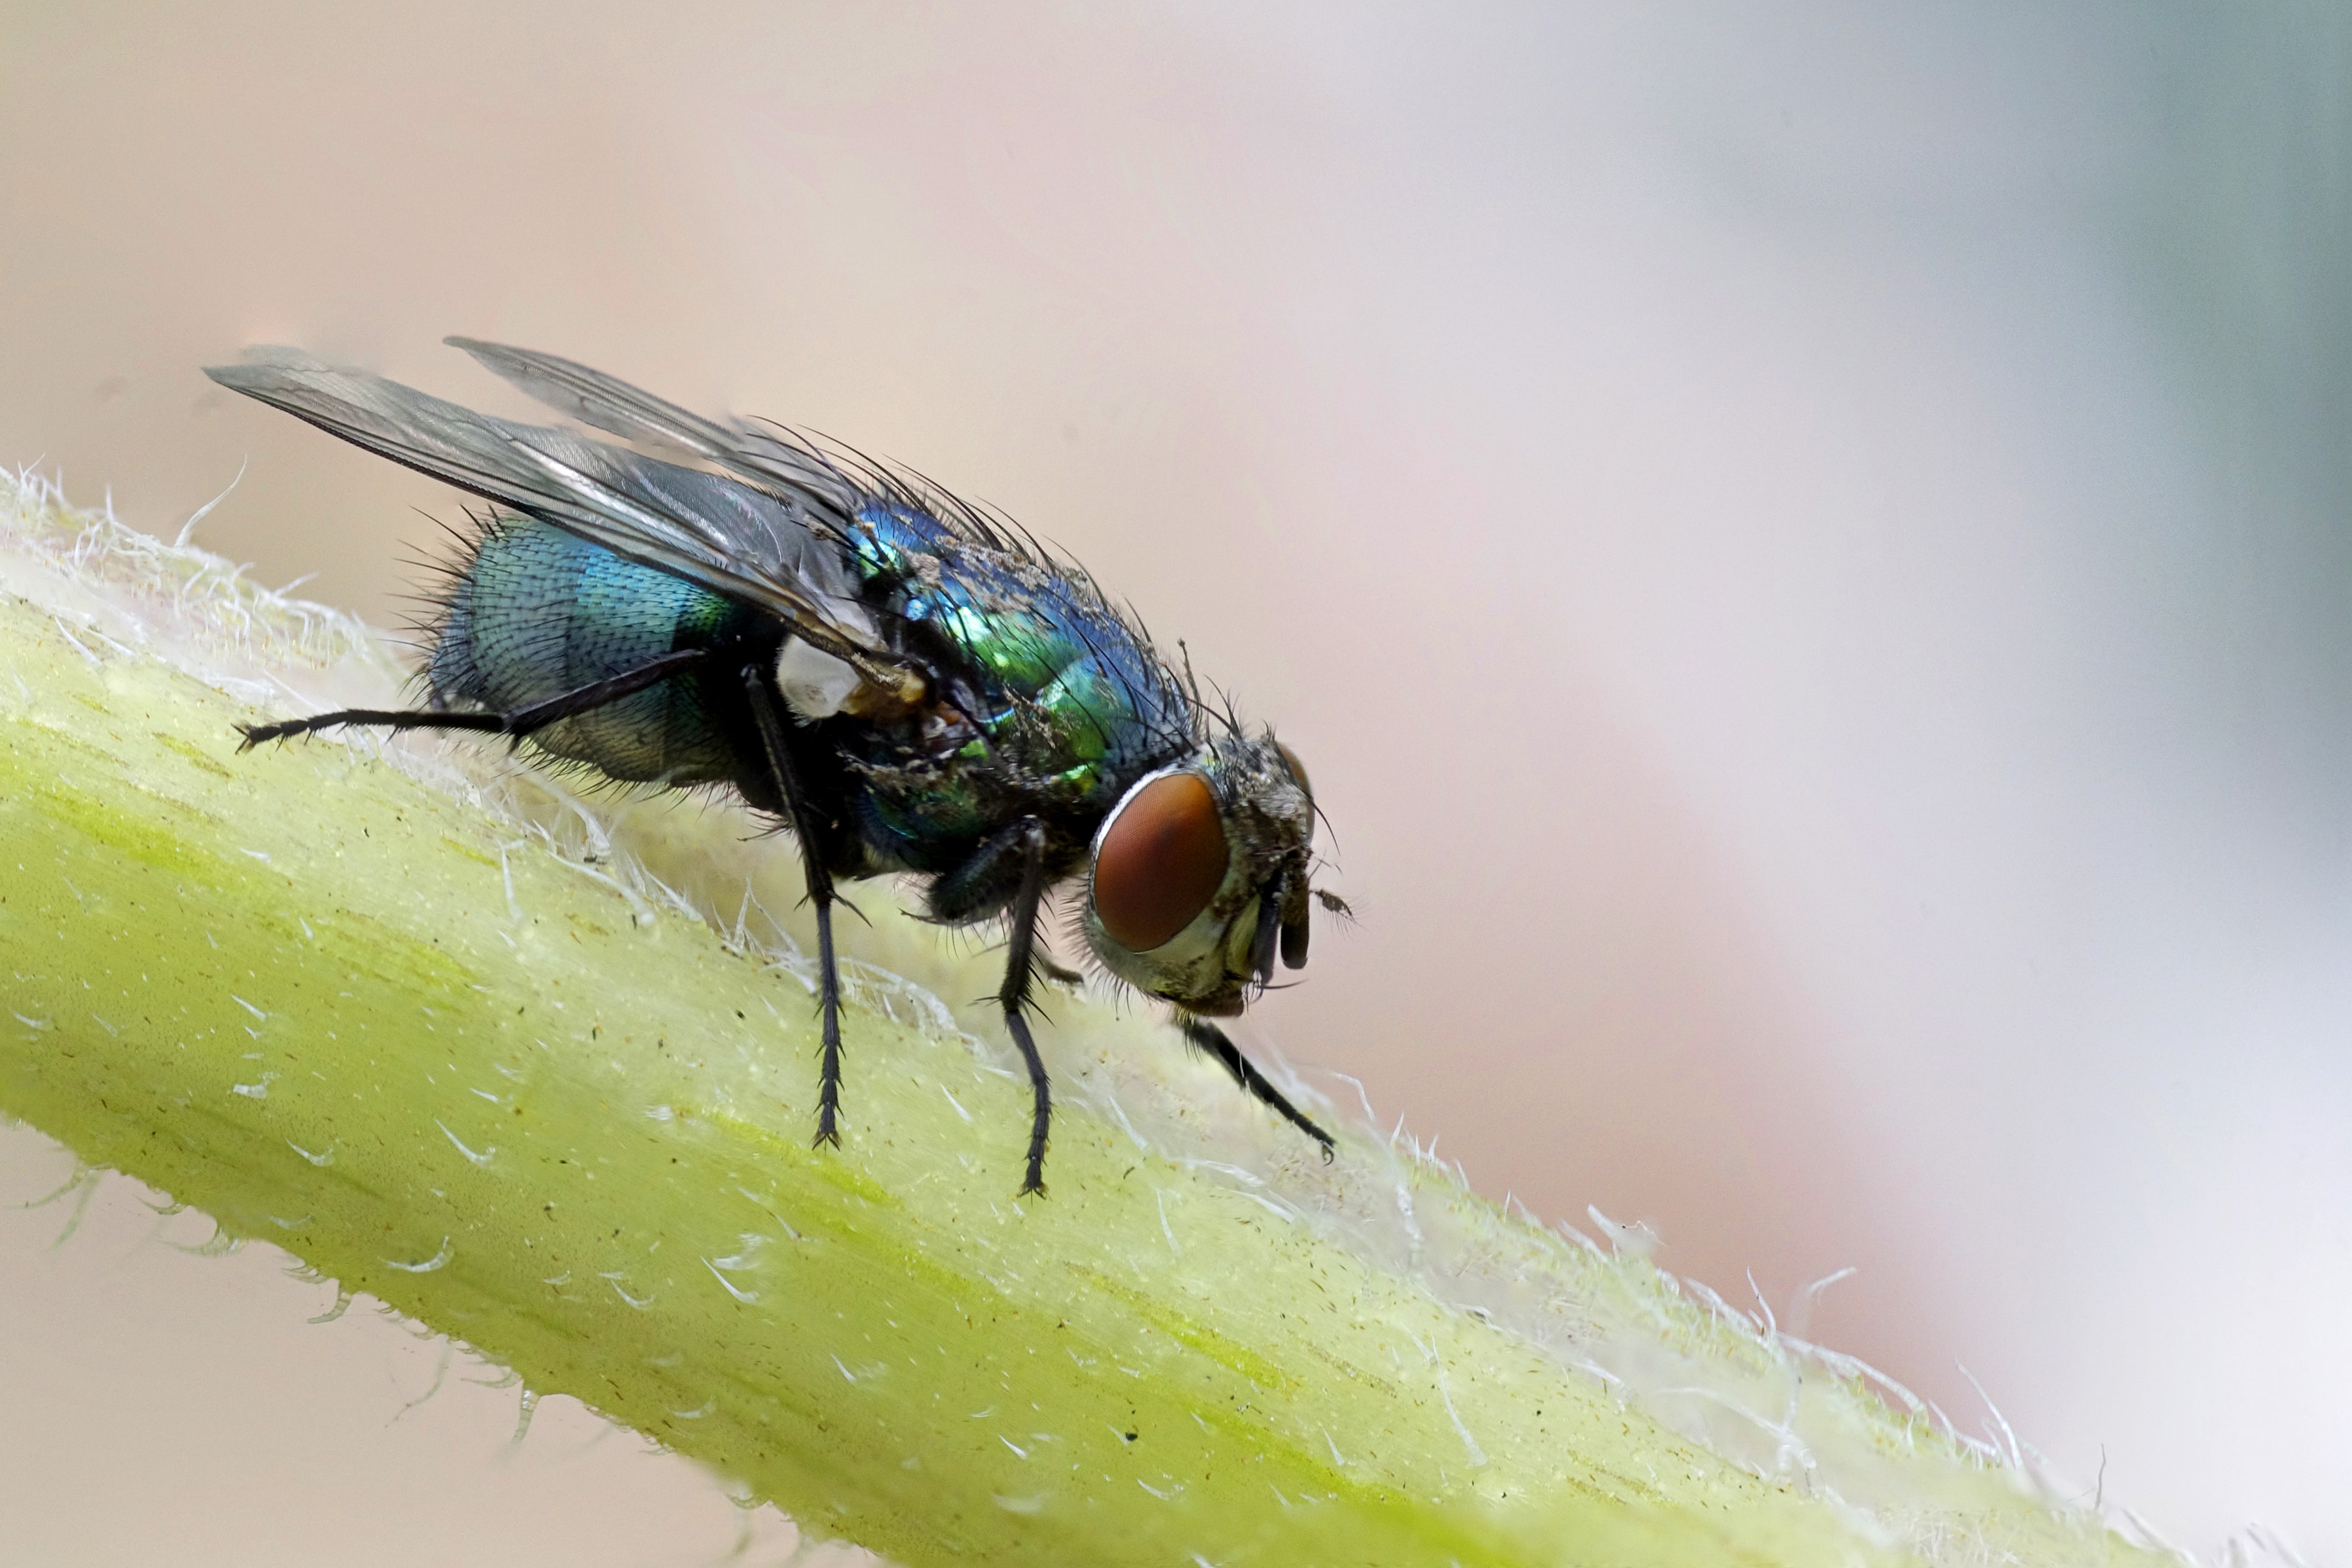 macro photograph of blue fly on plant's stem